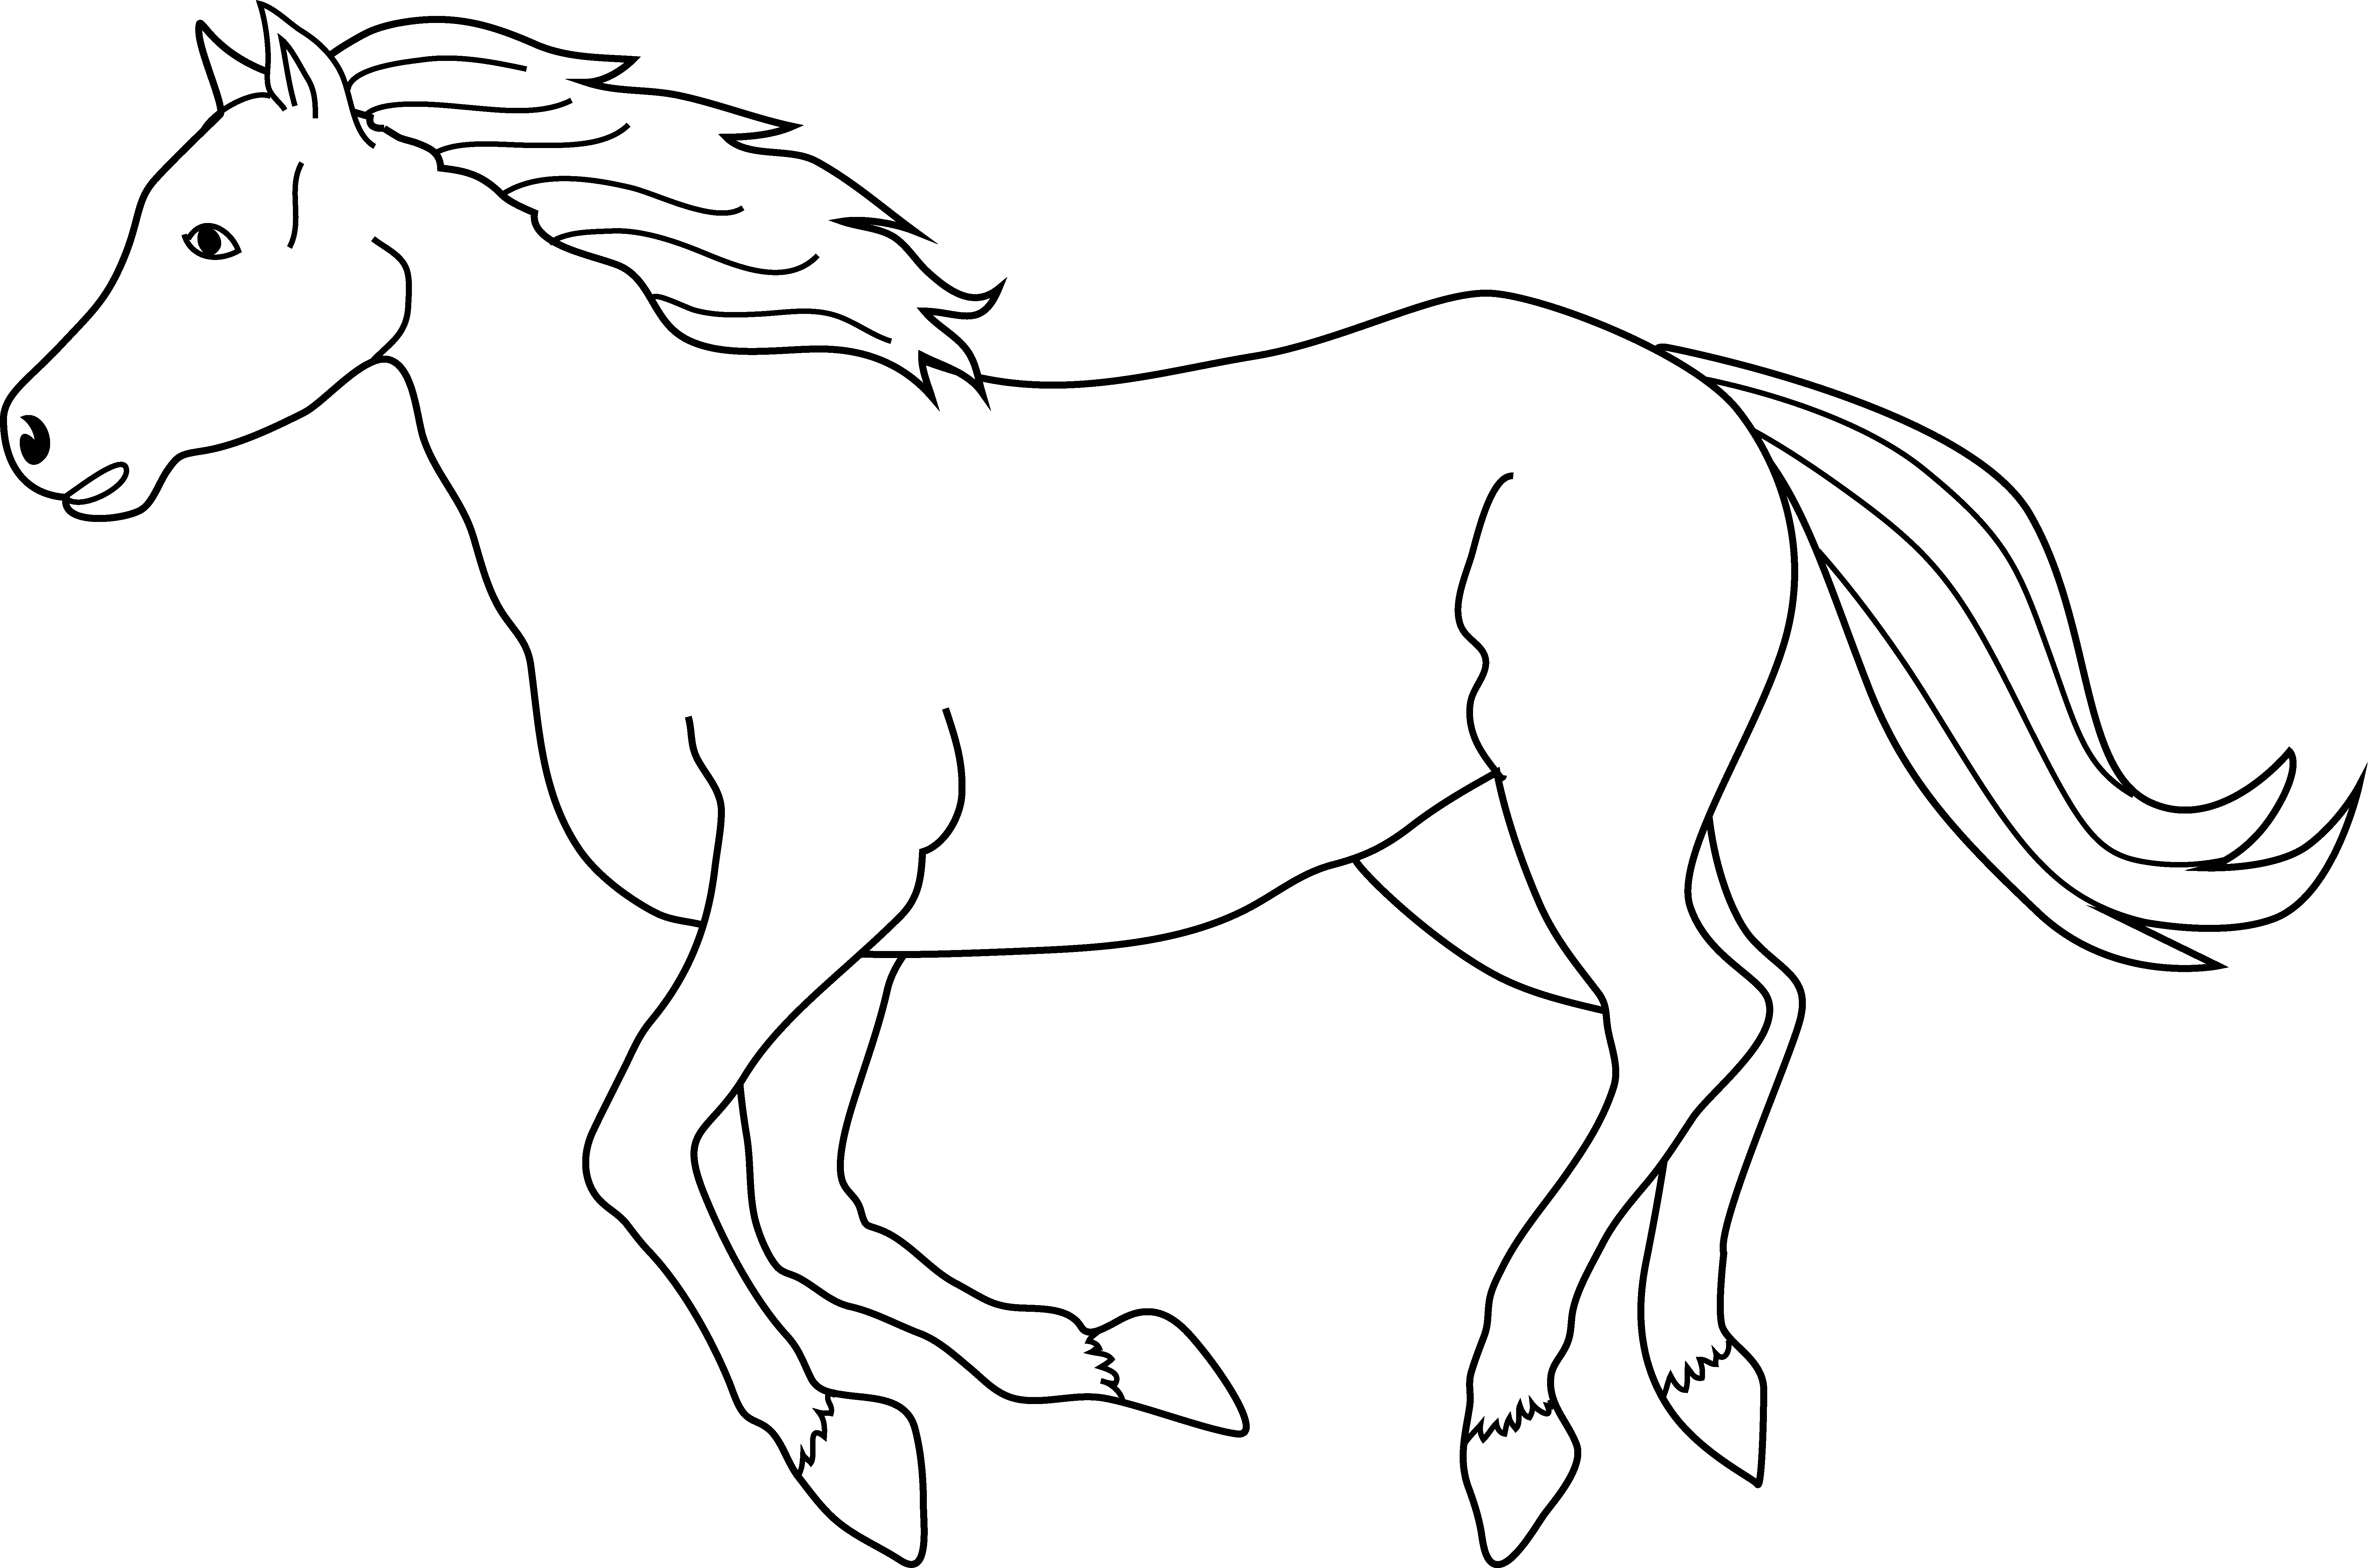 Horse clipart black and white top down vector black and white download Free Horse Line Art, Download Free Clip Art, Free Clip Art ... vector black and white download